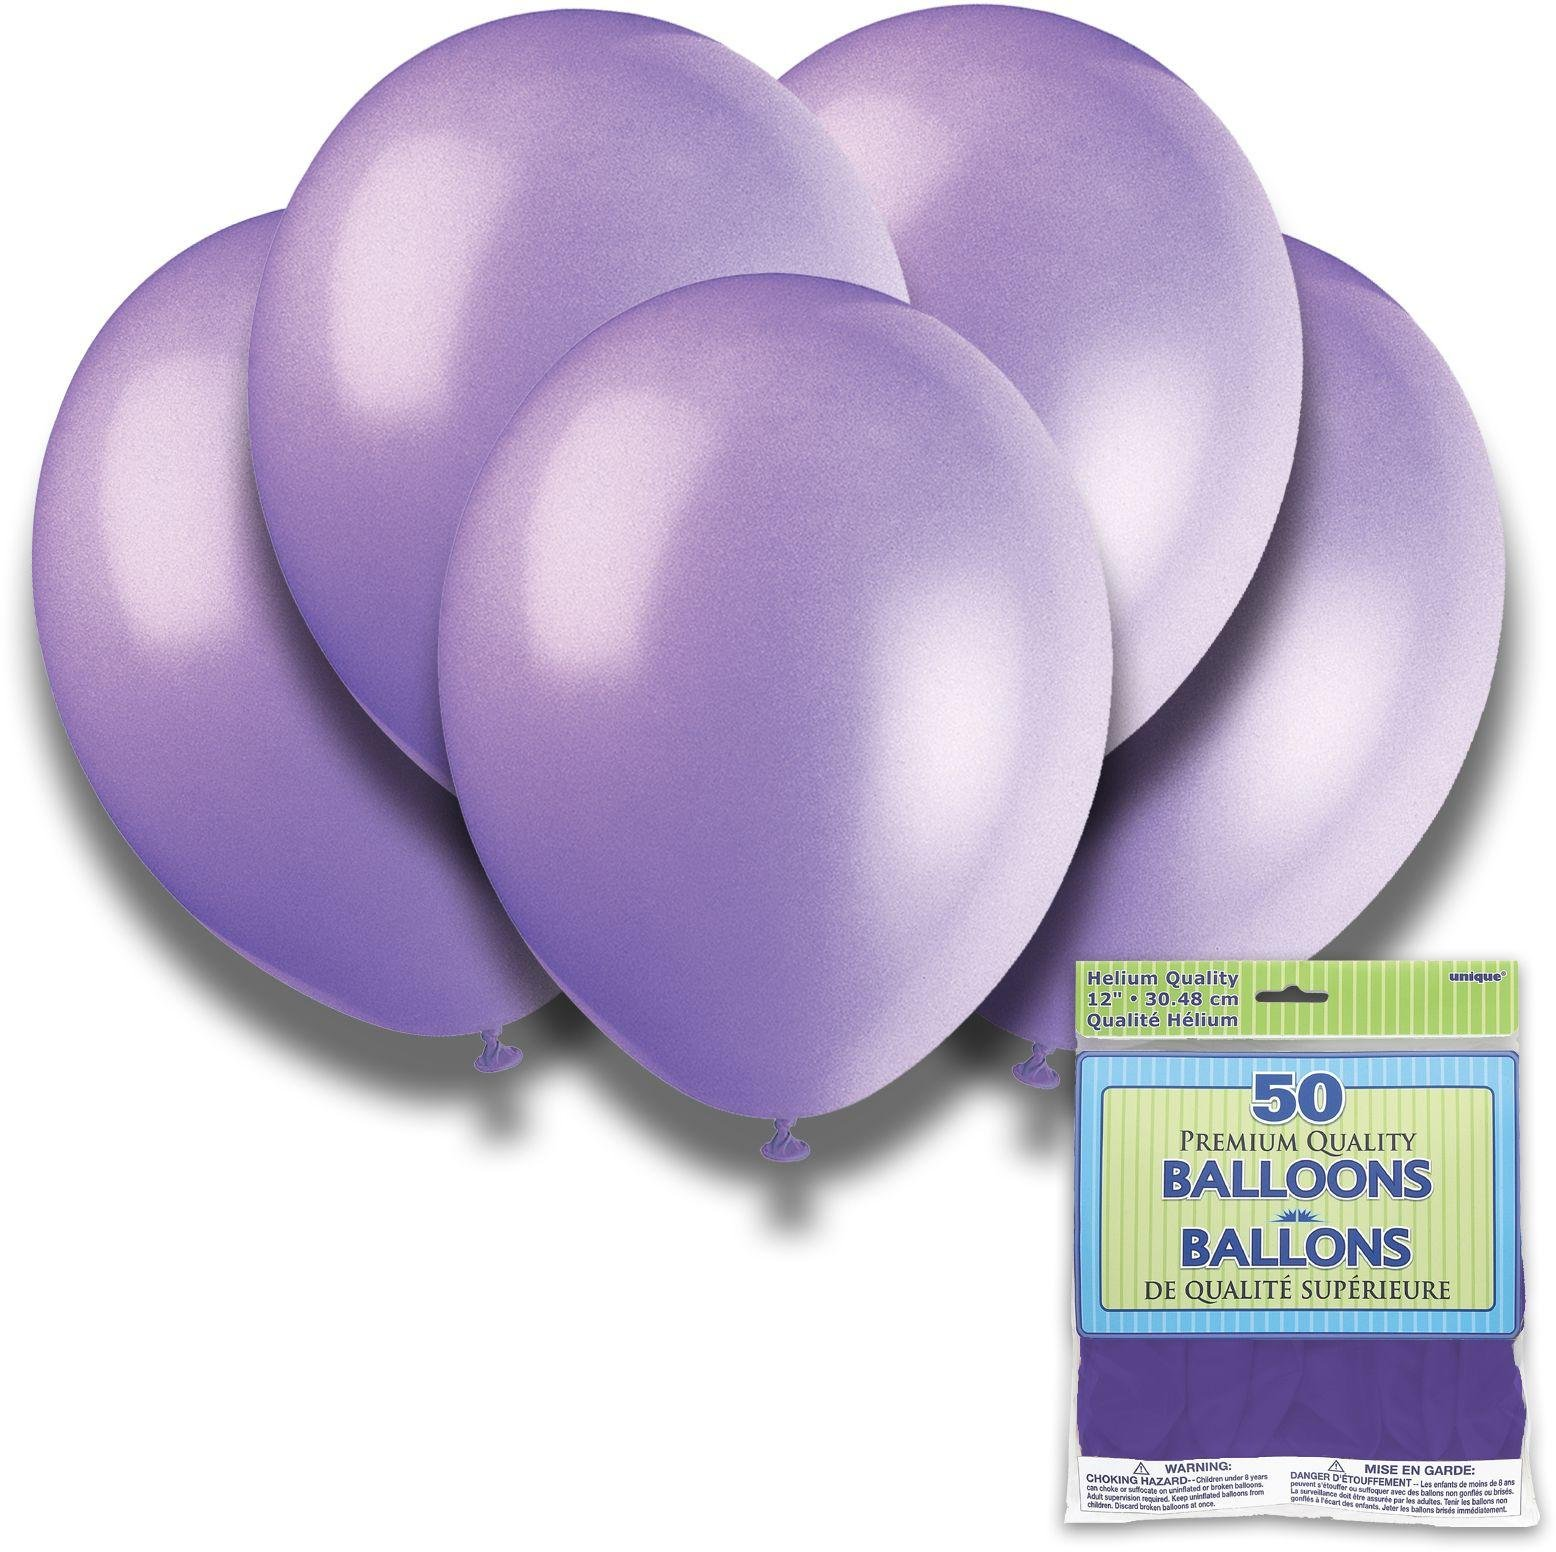 Argos - Lilac Lavender - 12 Inch Premium Balloons - Pack of...